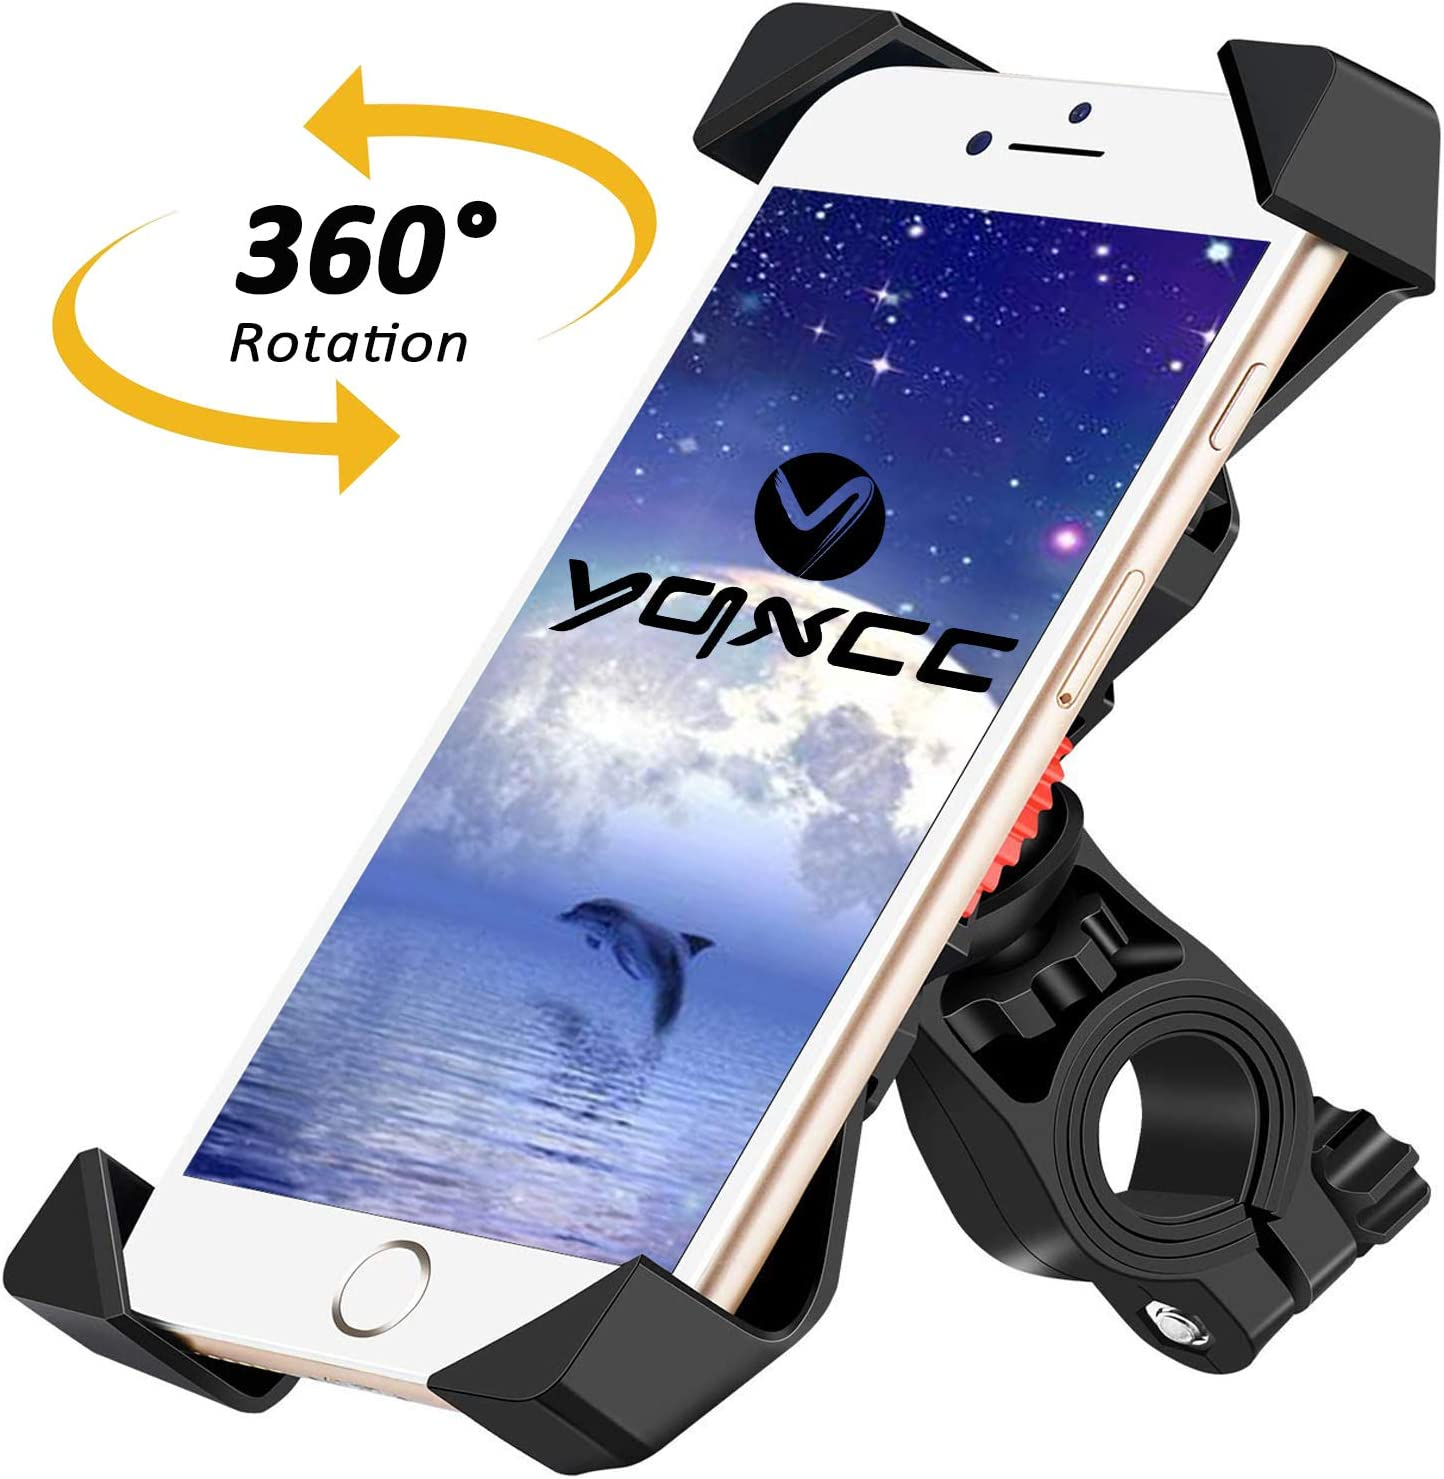 YQXCC Bike Phone Mount Bicycle Holder/Bike Accessories/Bike Phone Holder /360° Rotation Universal Cradle Clamp for iOS Android Smart Phone (Black)